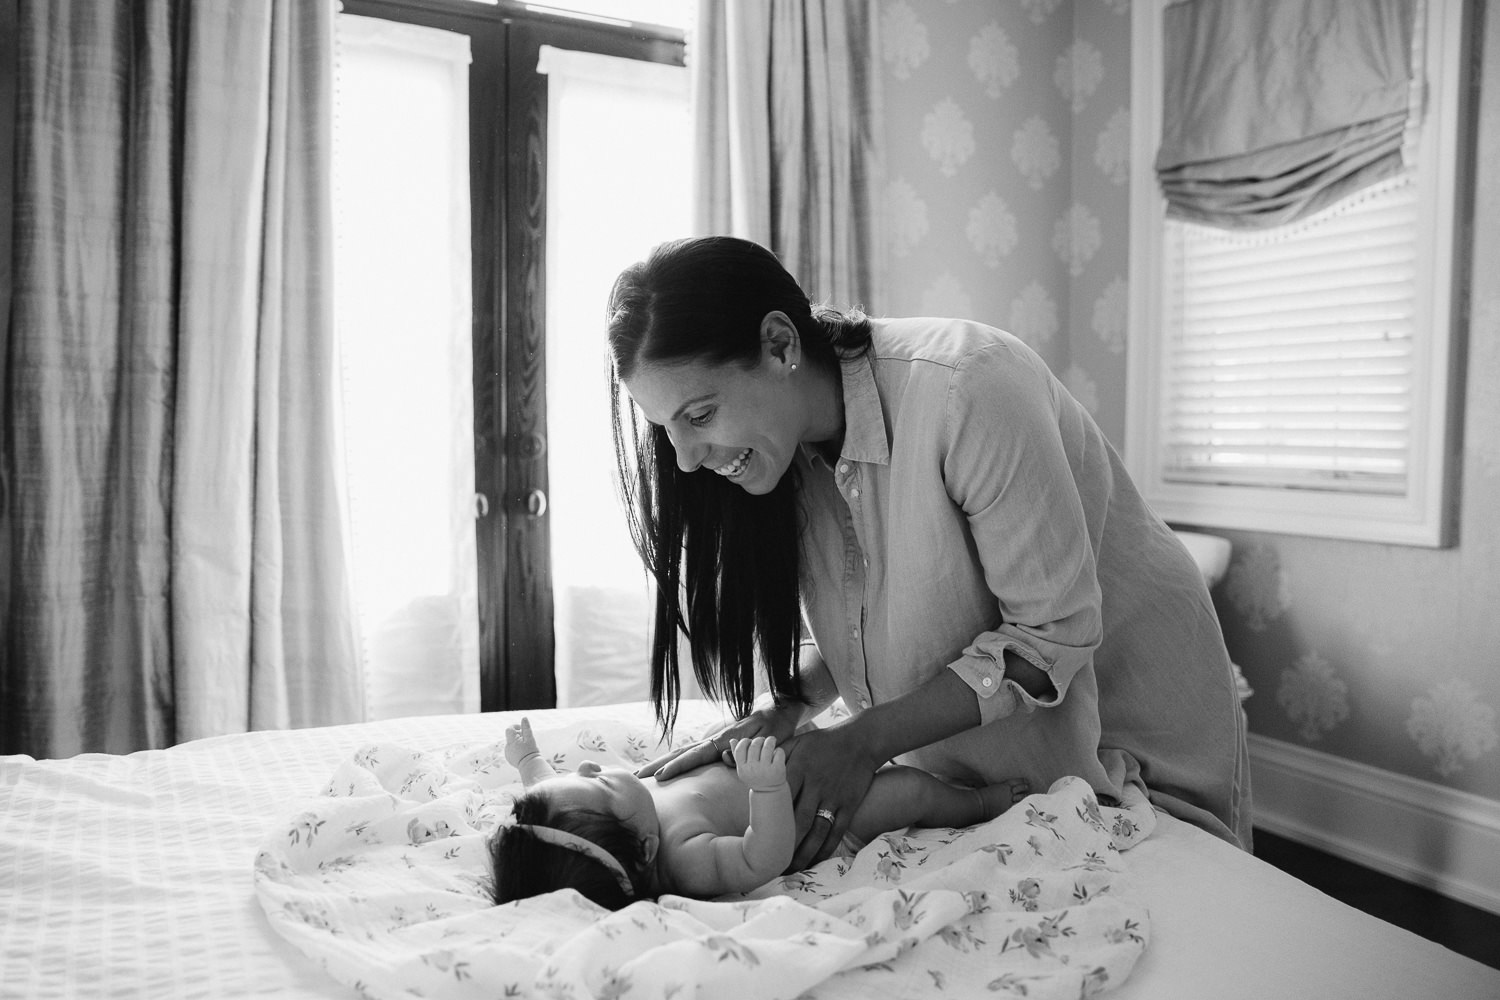 new mom with long brunette hair in chambray dress leans over 2 month old baby girl as she changes her diaper - Stouffville Lifestyle Photos